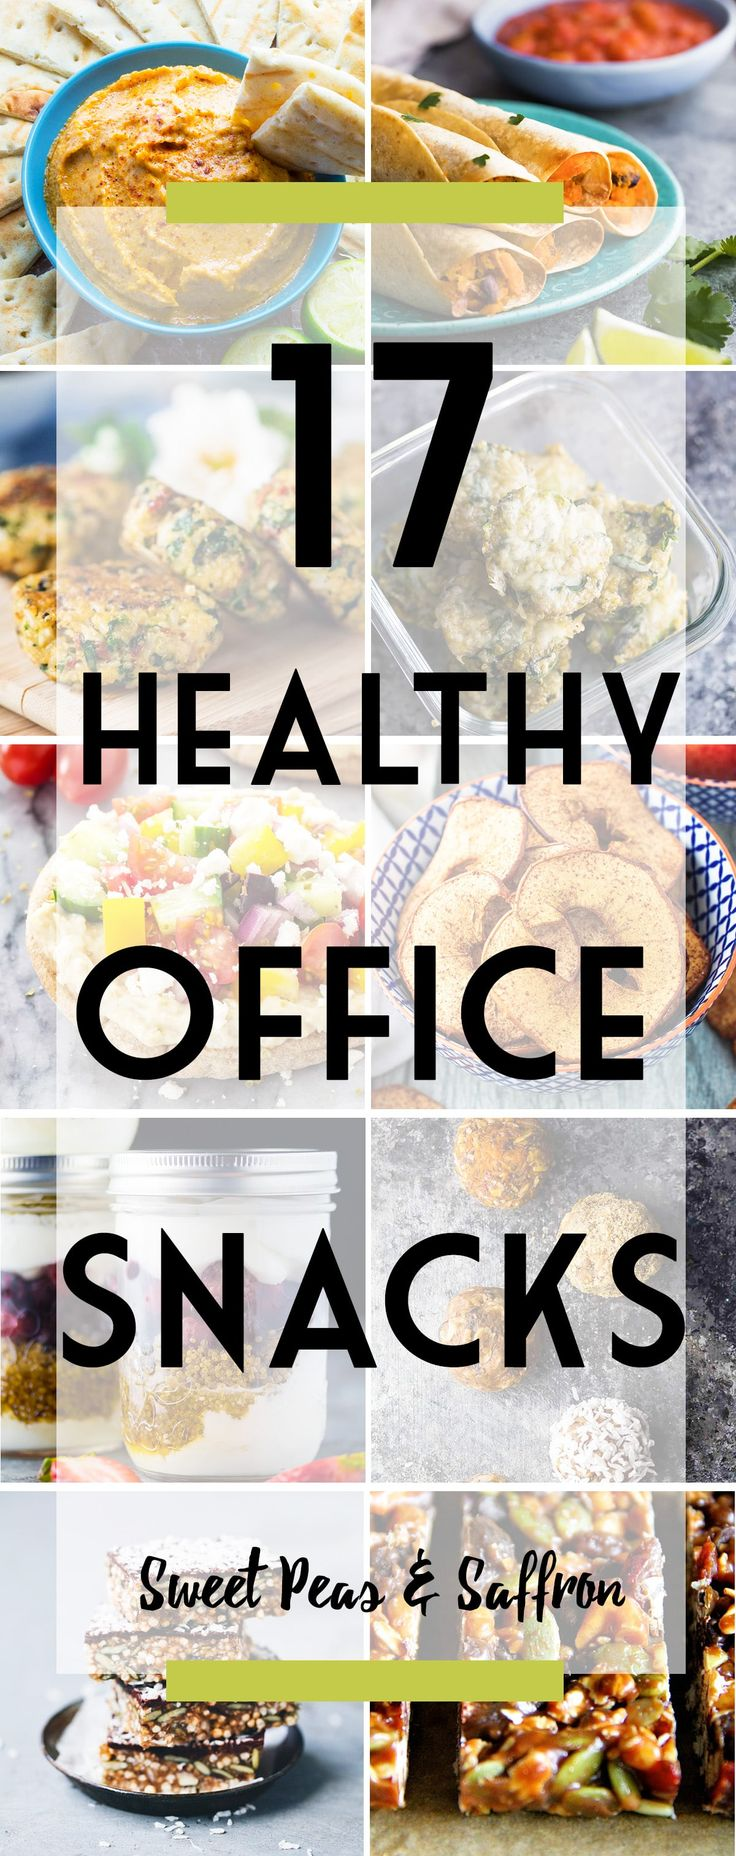 These healthy office snacks will keep you going in the afternoon while keeping things light. Tons of easy portable recipe ideas.